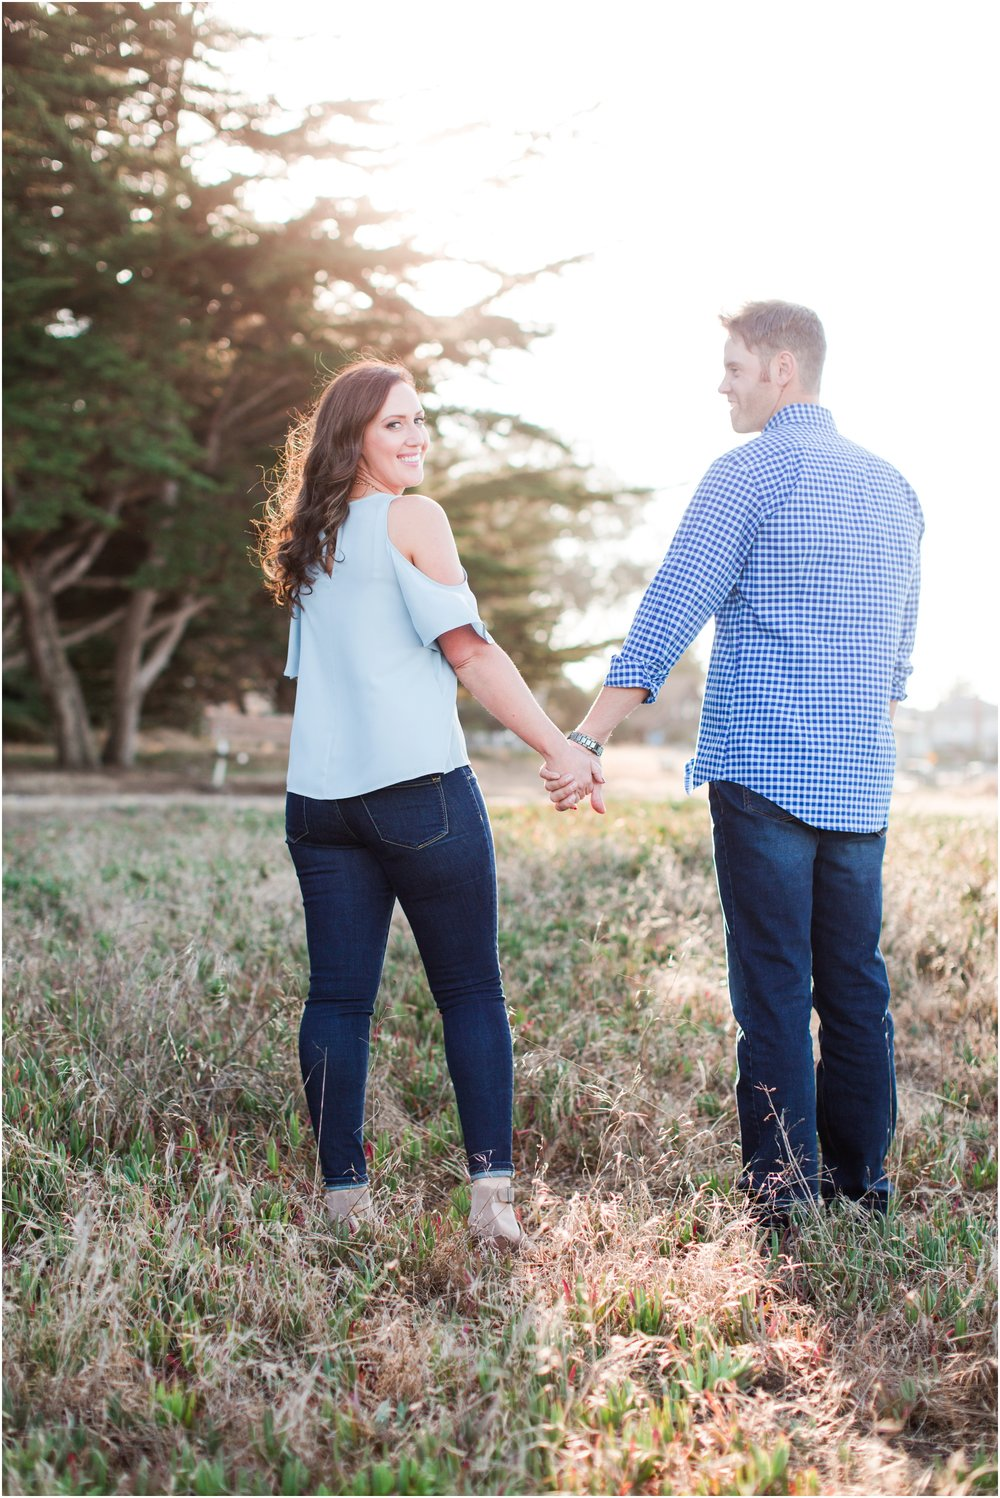 Berwick Park Monterey engagement pictures by Briana Calderon Photography_2375.jpg